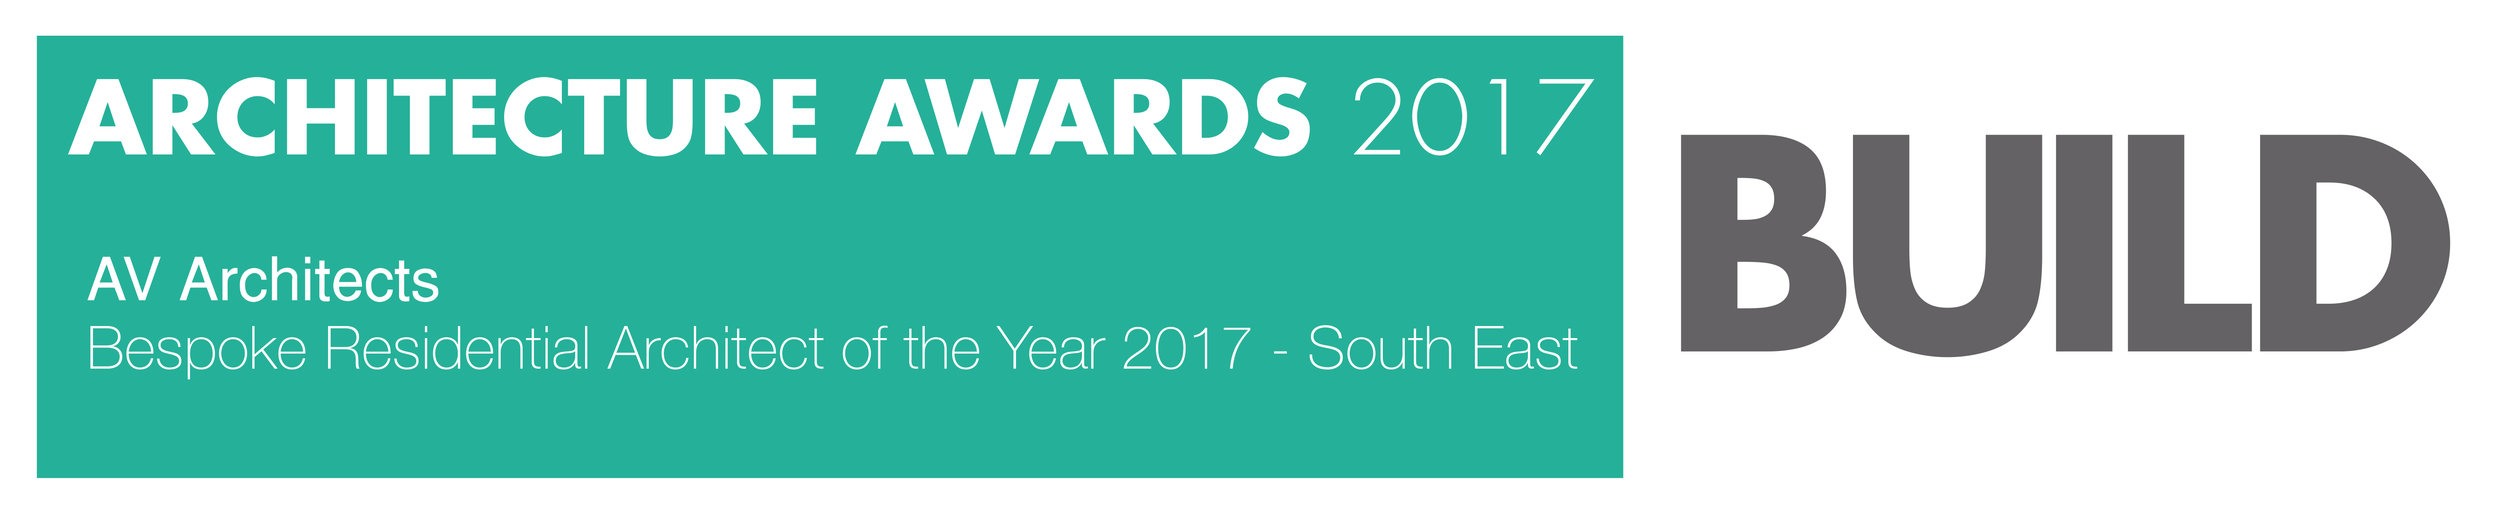 AR170032-Bespoke Residential Architect of the Year 2017 - South East Eng....jpg